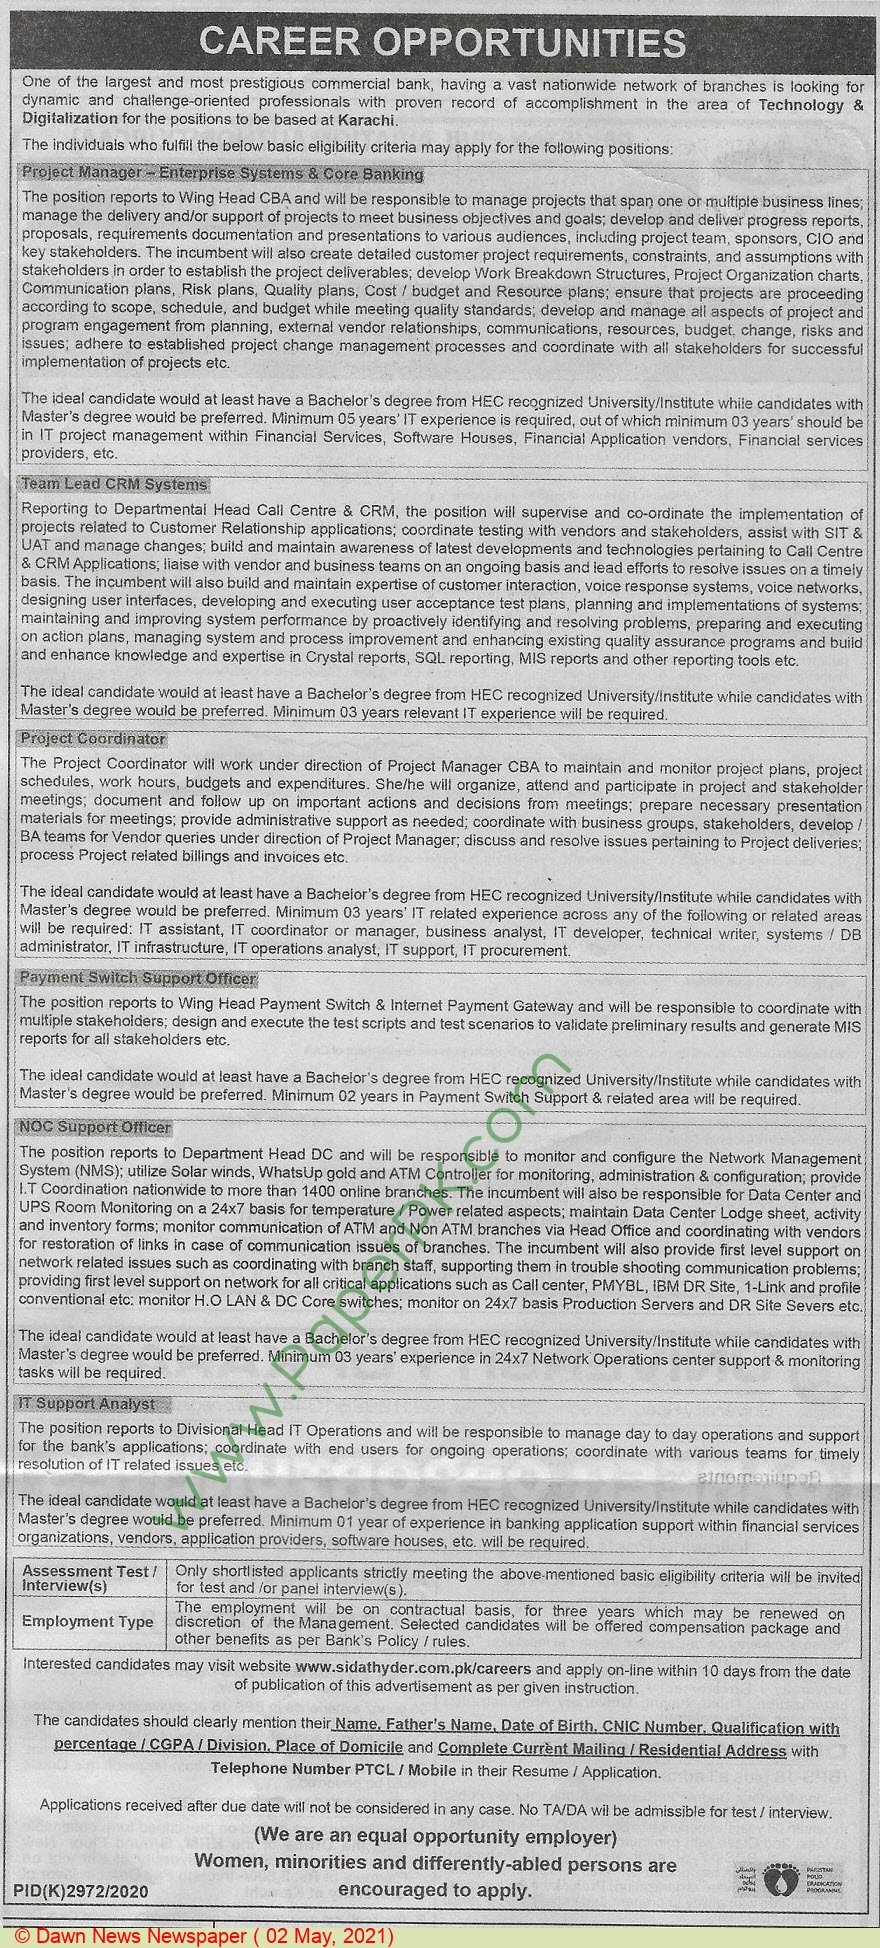 Noc Support Officer jobs in Karachi at Karachi Based Company